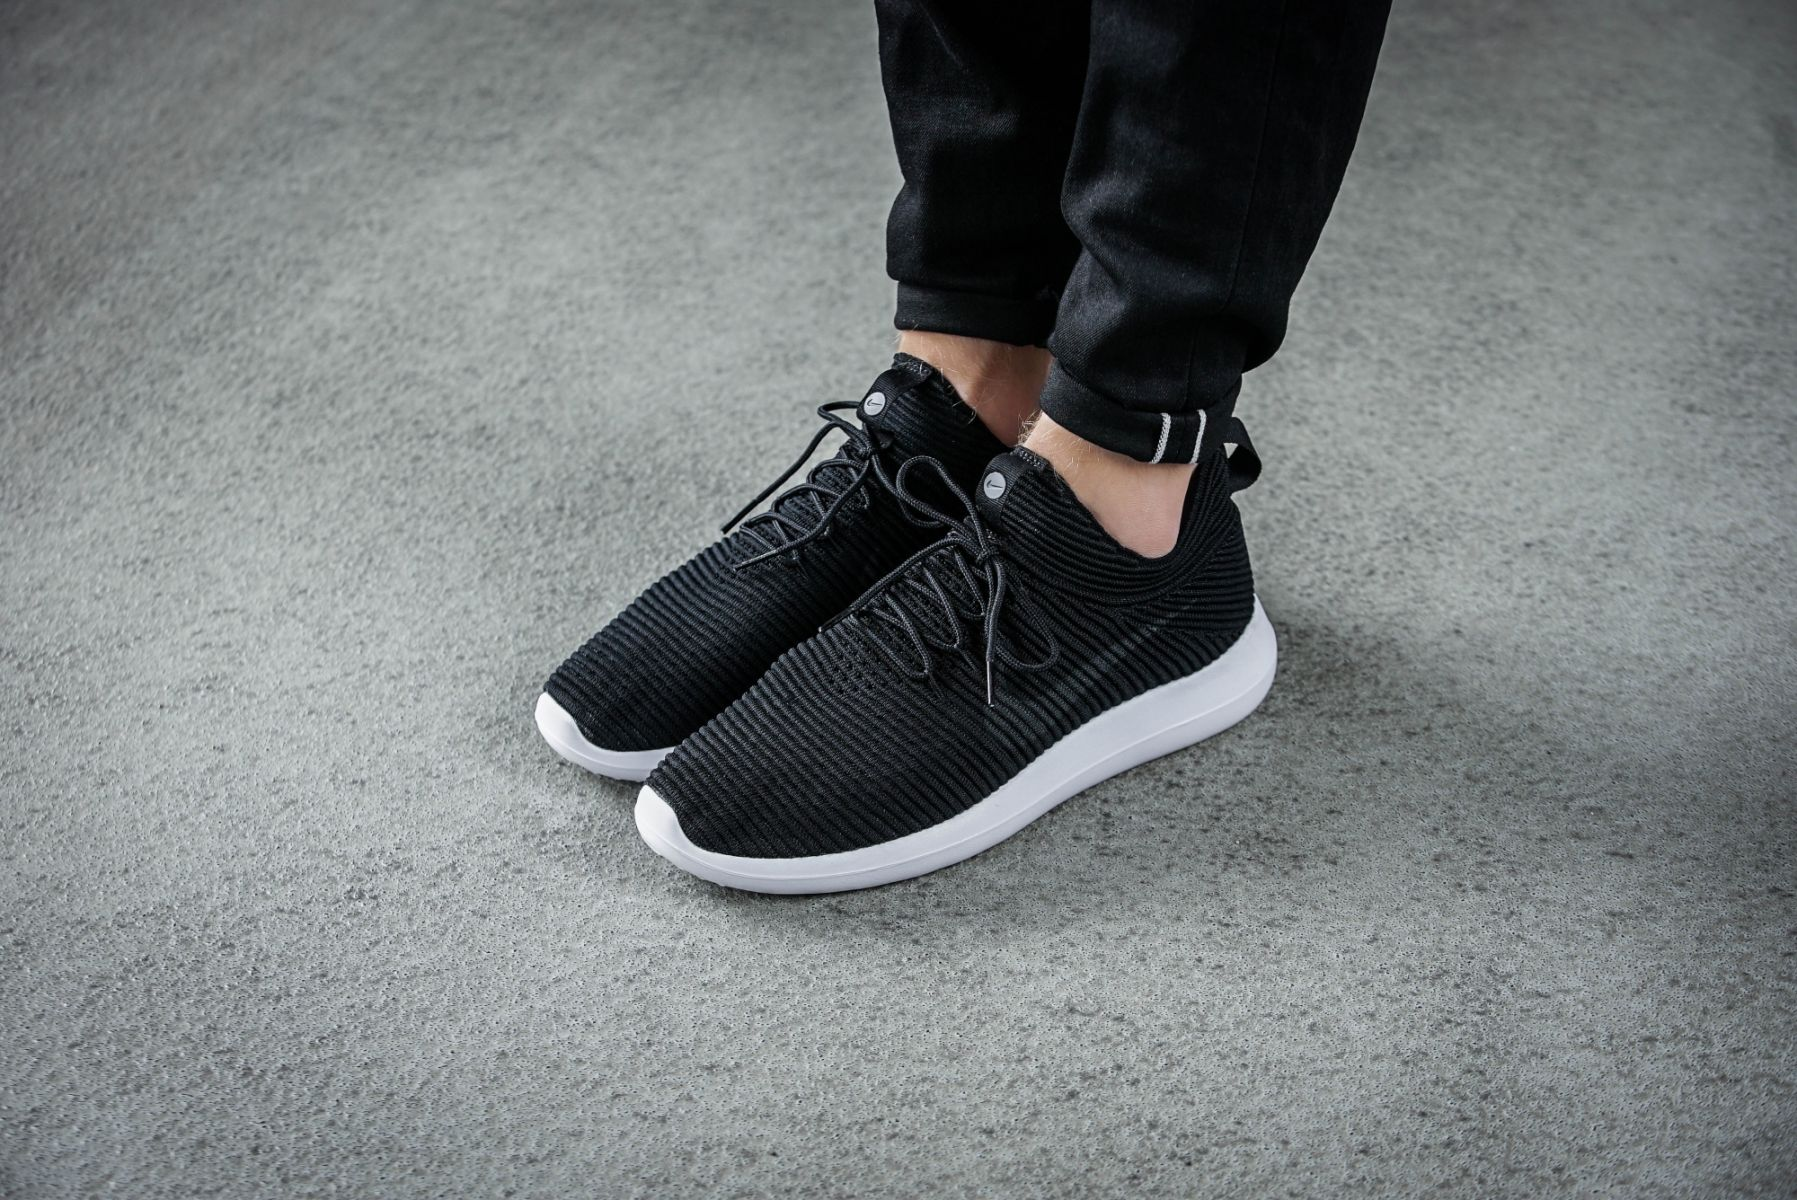 New Nike Roshe Two Flyknit Black White